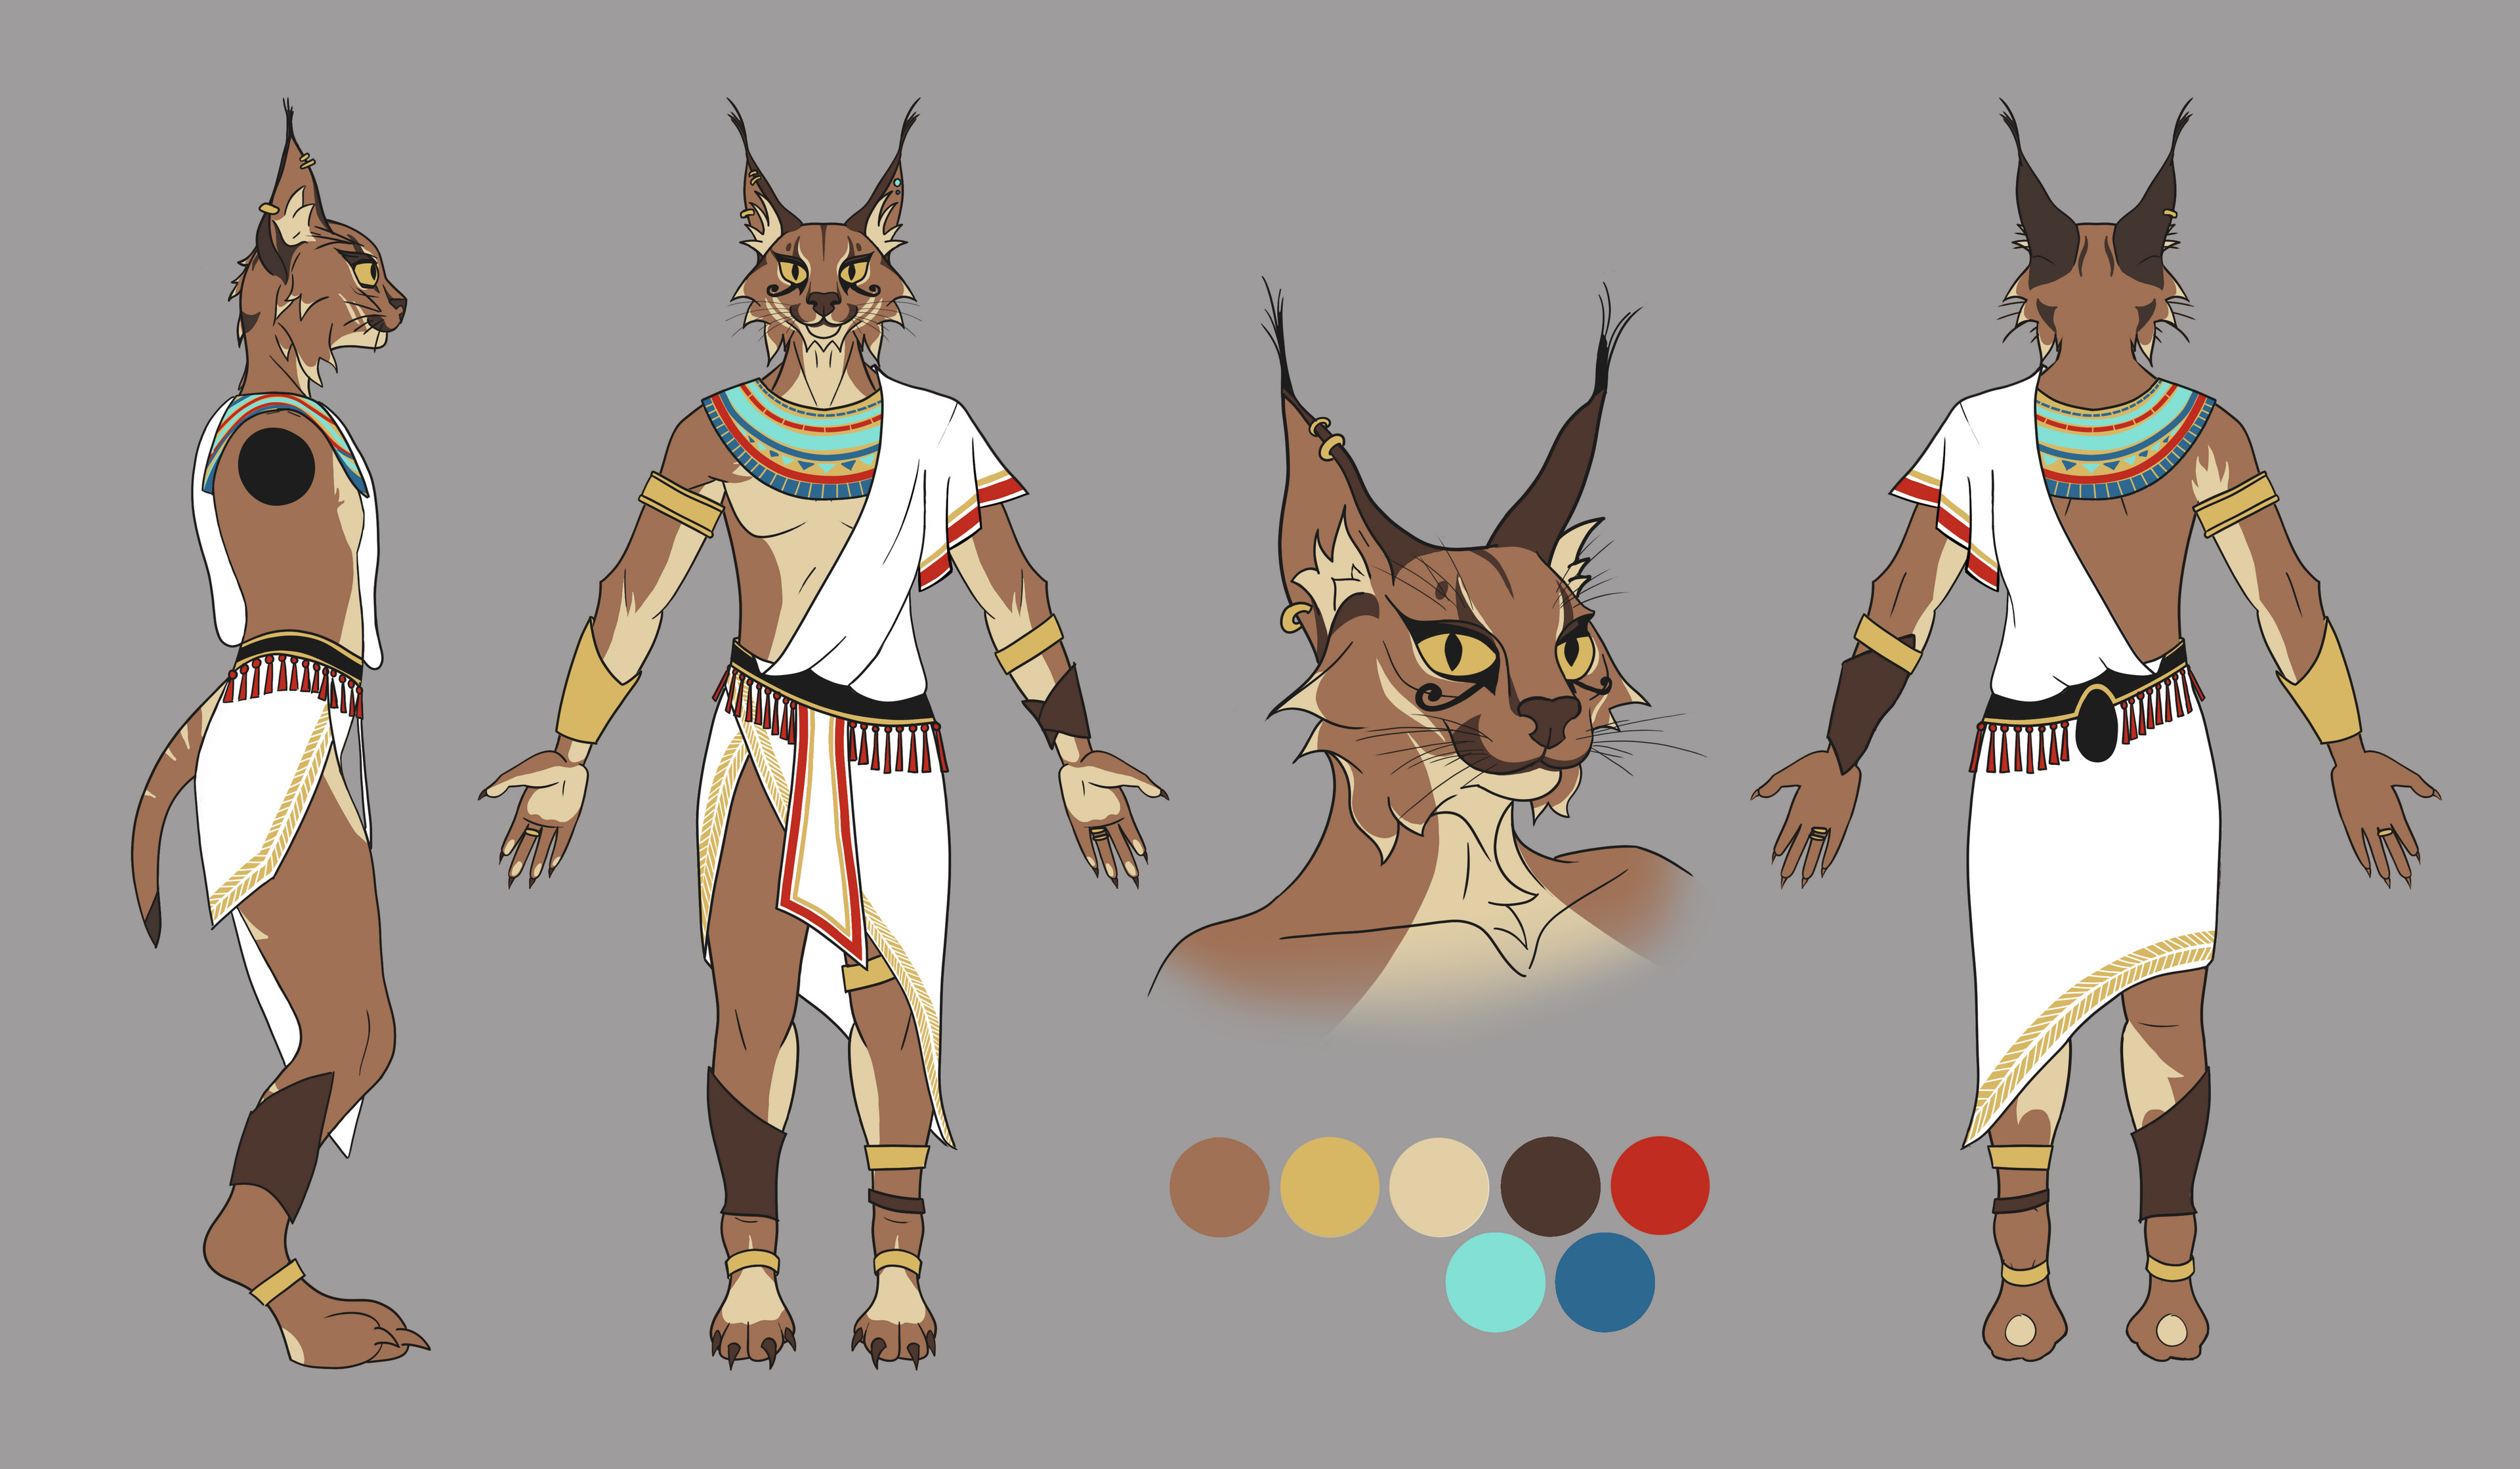 Initial design reference sketch